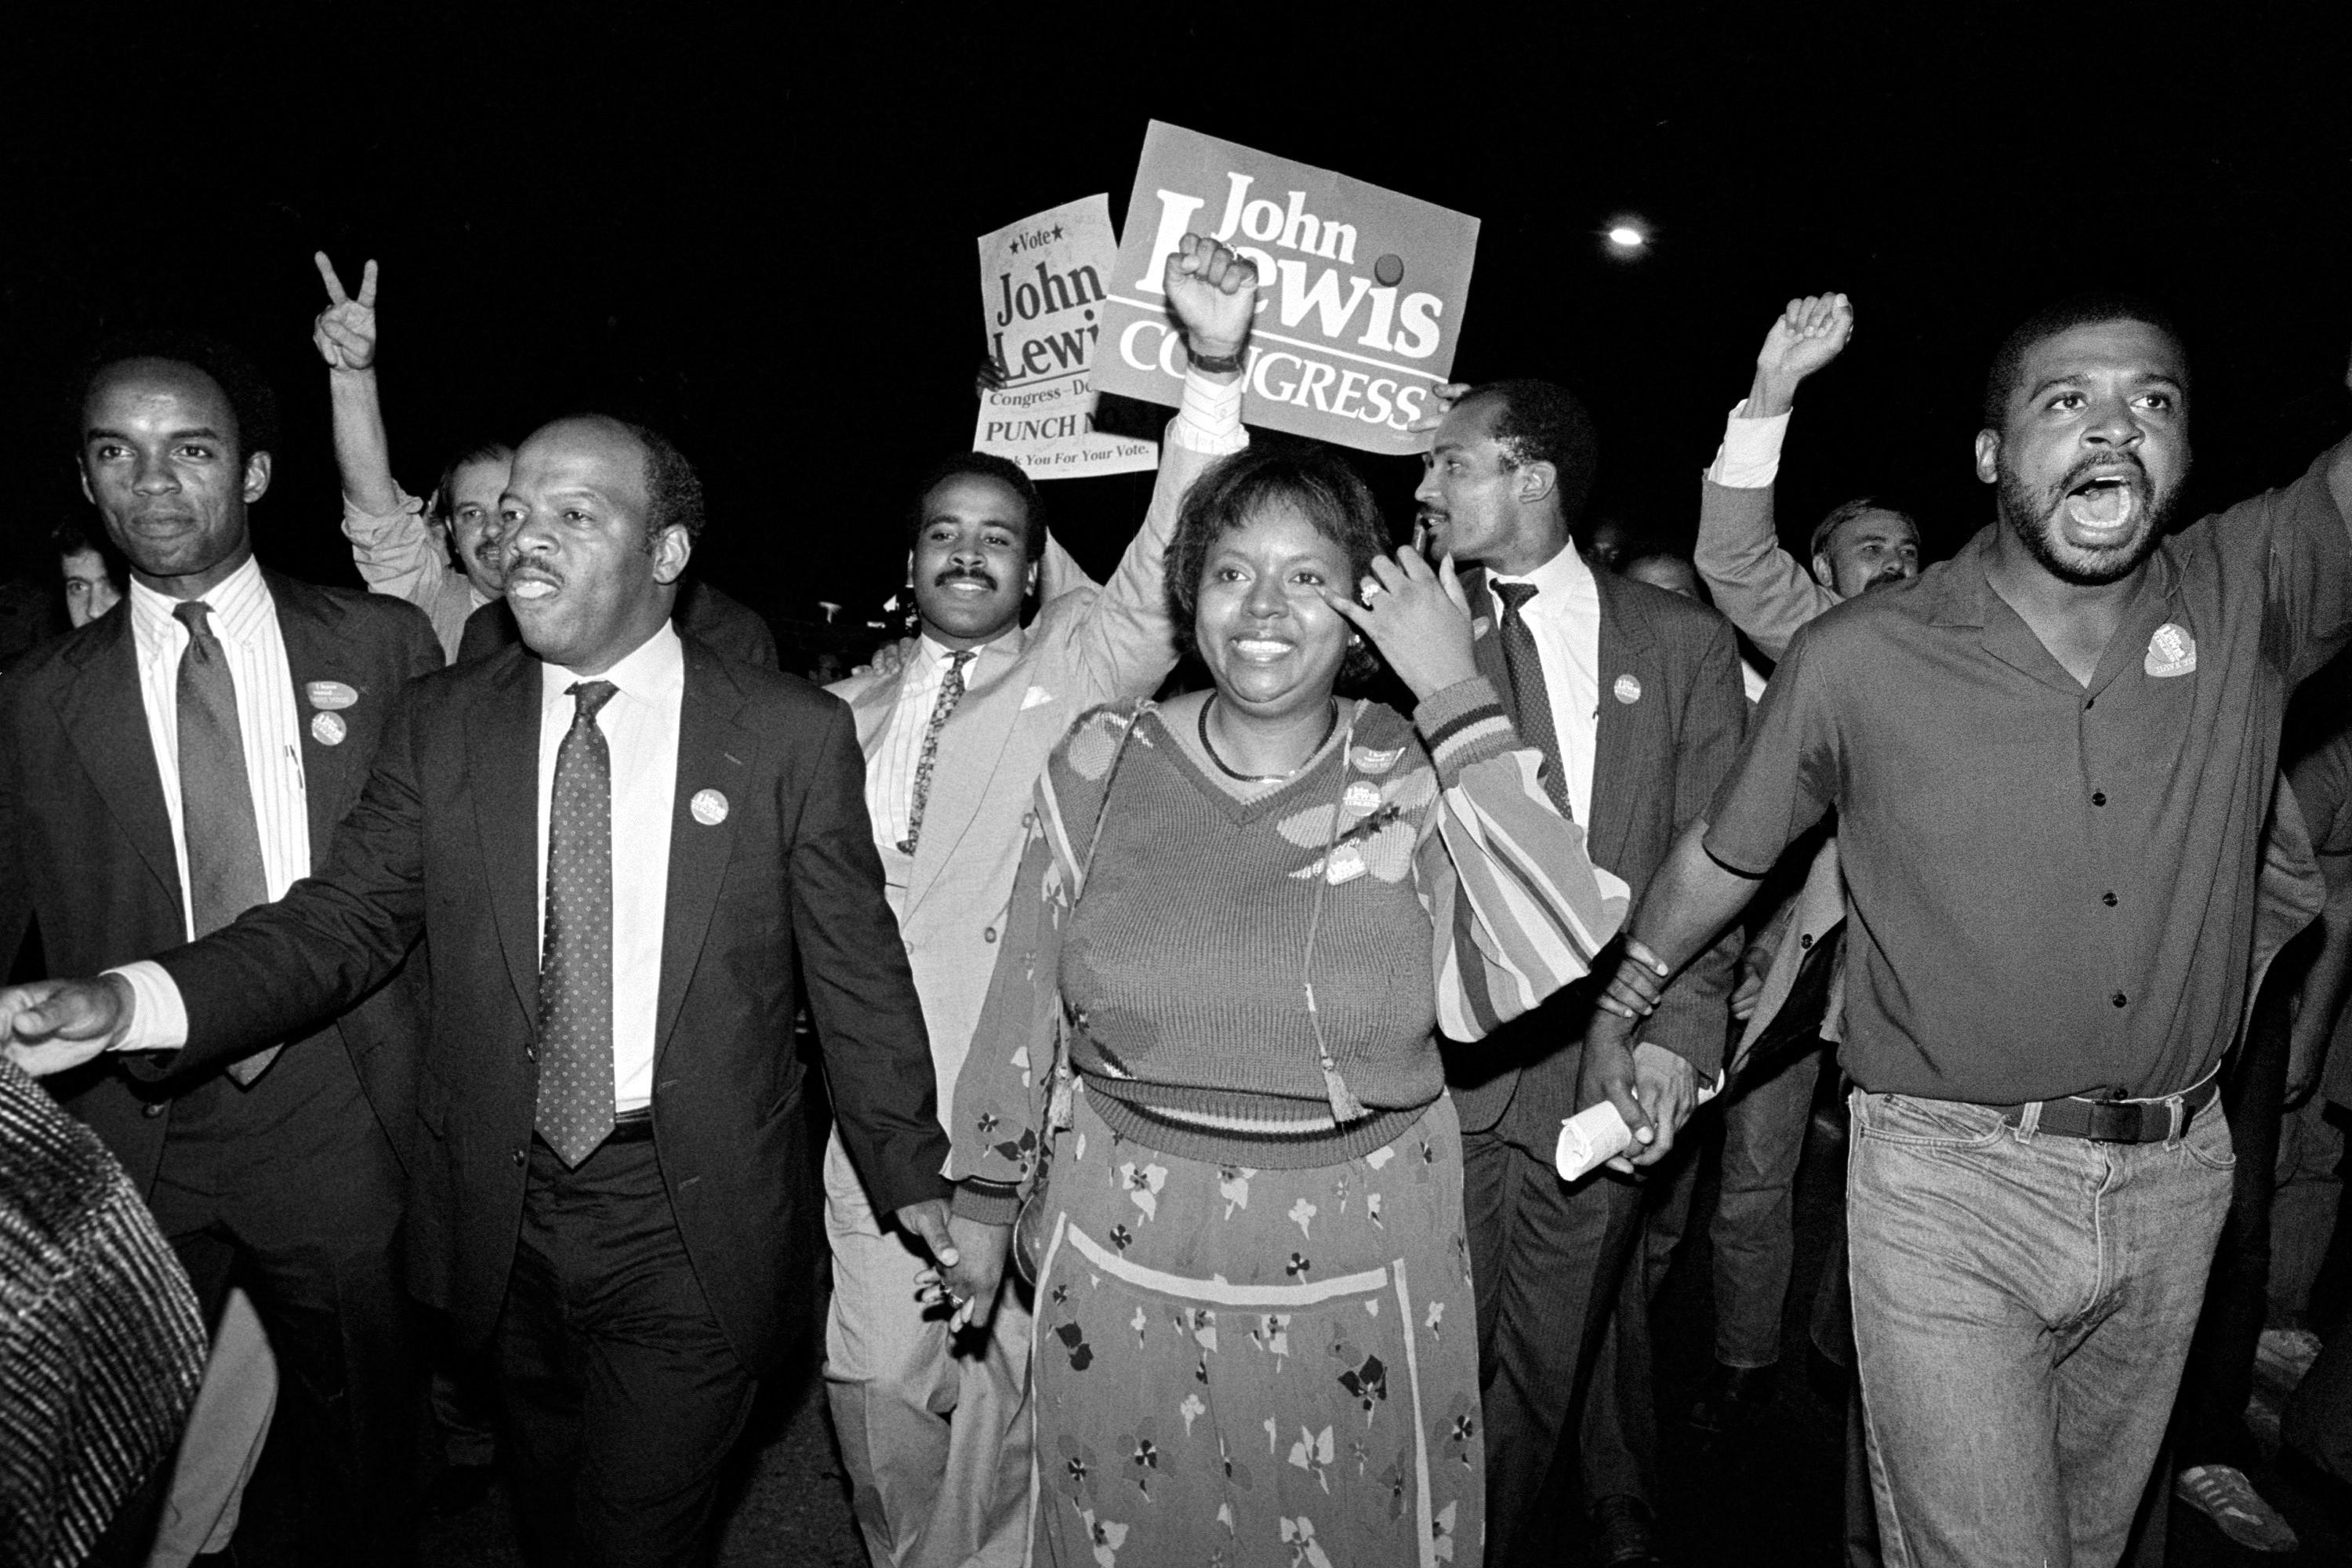 FILE - In this Tuesday night, Sept. 3, 1986, file photo, John Lewis, front left, and his wife, Lillian, holding hands, lead a march of supporters from his campaign headquarters to an Atlanta hotel for a victory party after he defeated Julian Bond in a runoff election for Georgia's 5th Congressional District seat in Atlanta. Lewis, who carried the struggle against racial discrimination from Southern battlegrounds of the 1960s to the halls of Congress, died Friday, July 17, 2020. (AP Photo/Linda Schaeffer, File)